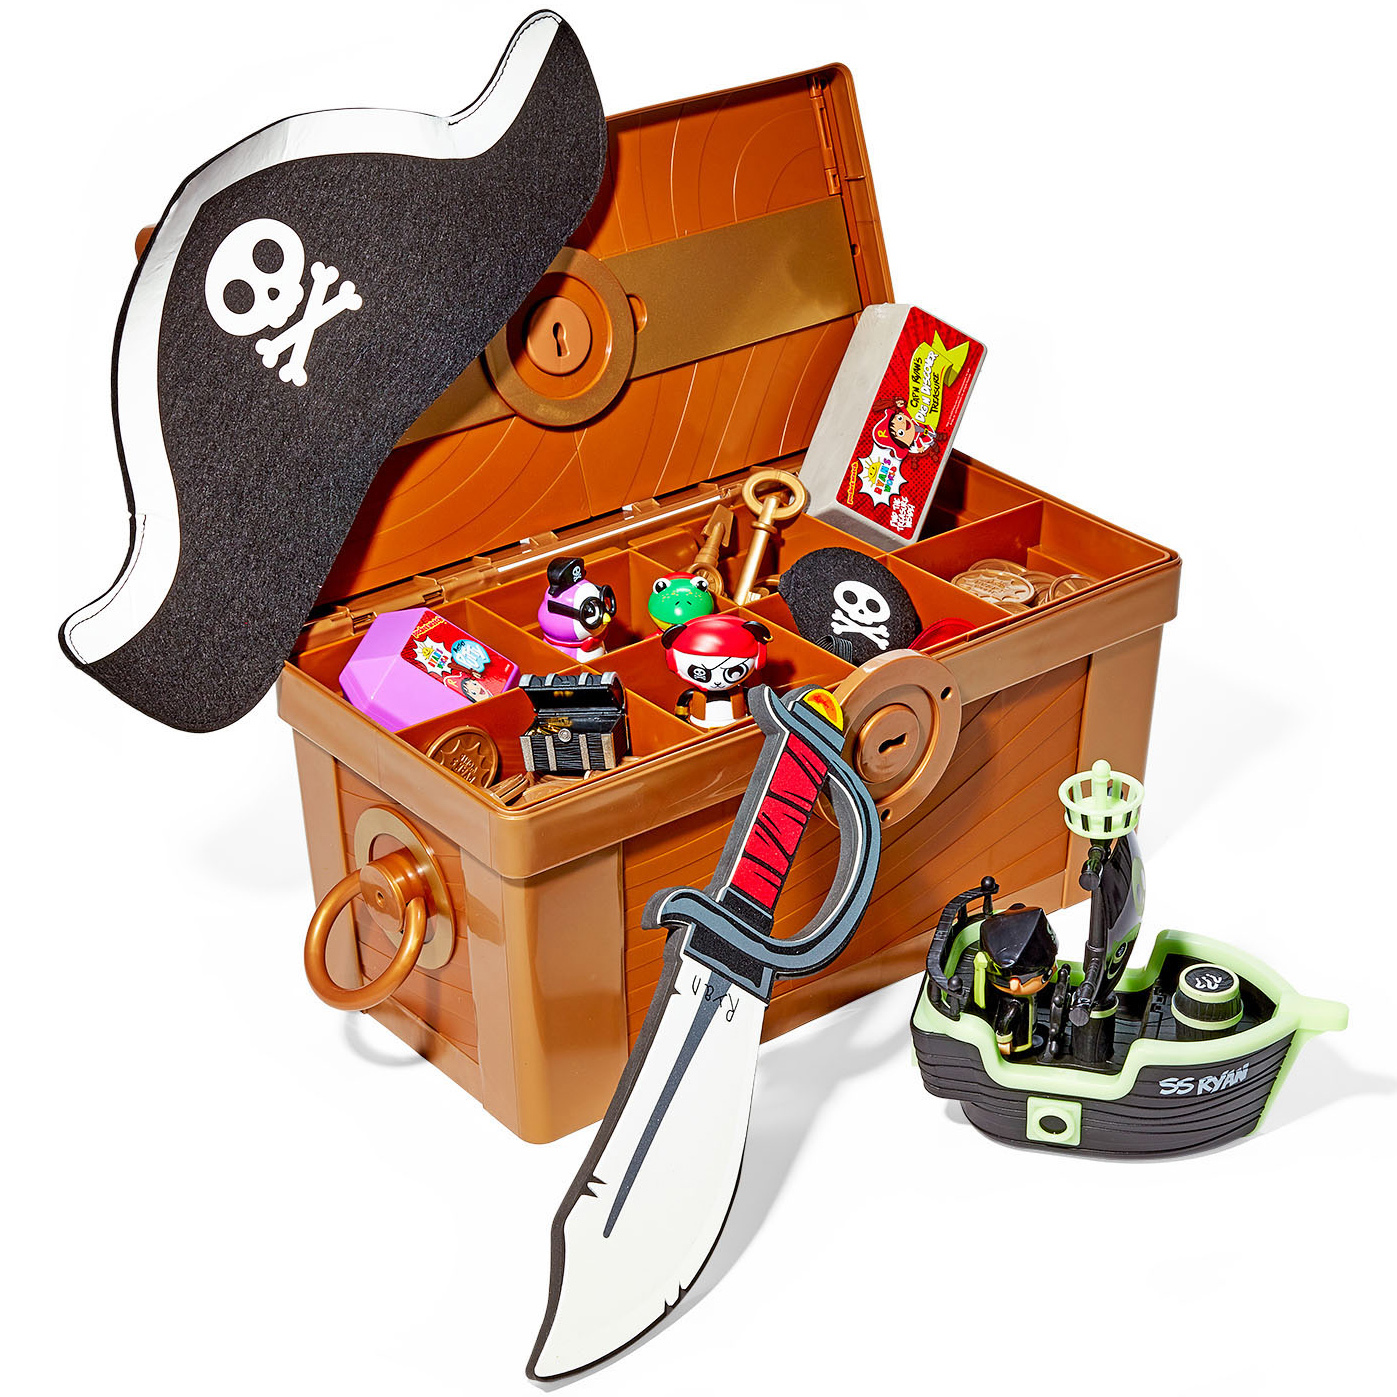 Bonkers Toys Cap'n Ryan's Mega Mystery Treasure Chest